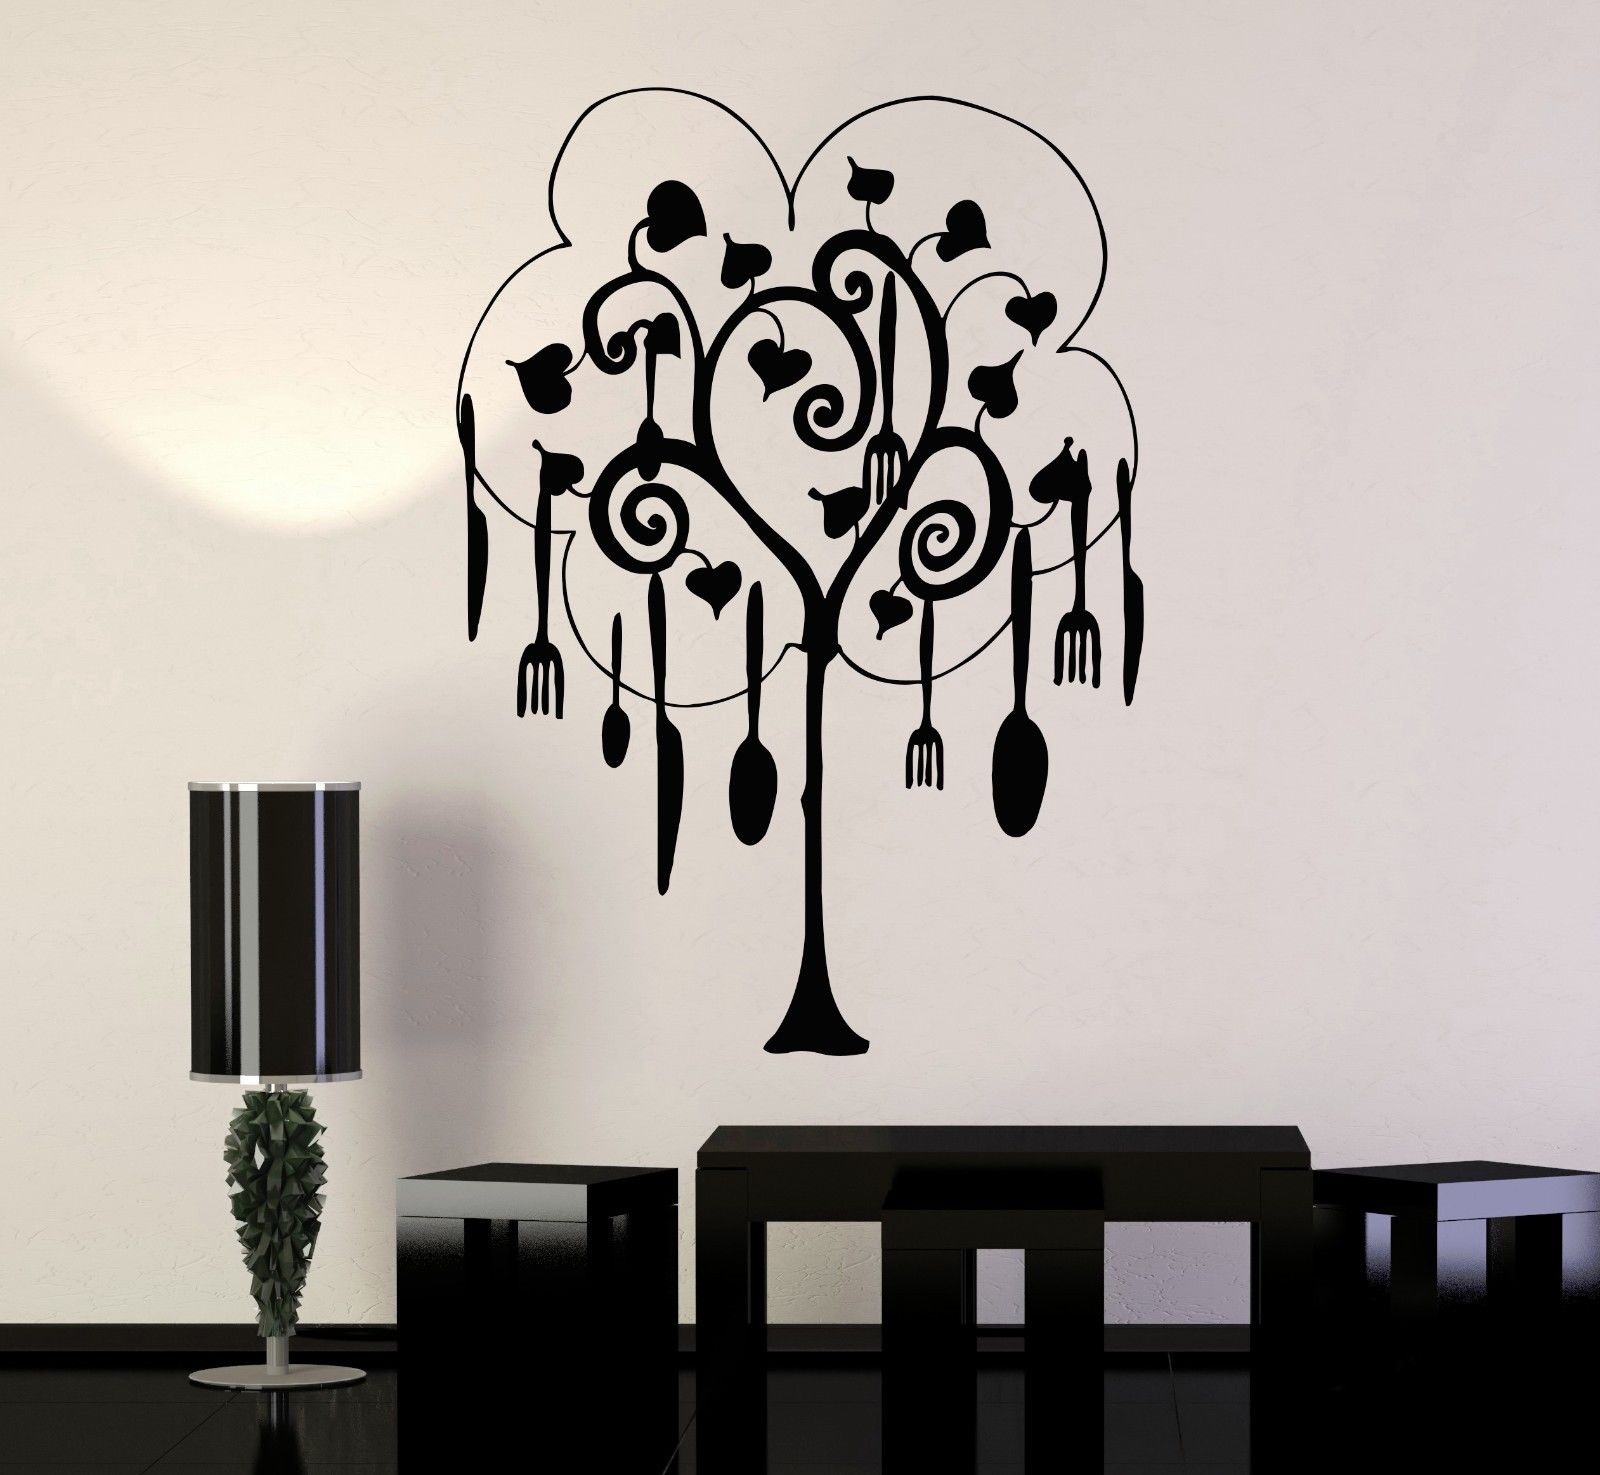 new house Vinyl Wall Decal Tree Cutlery Kitchen Restaurant Housewife Art Stickers free shipping(China (Mainland))